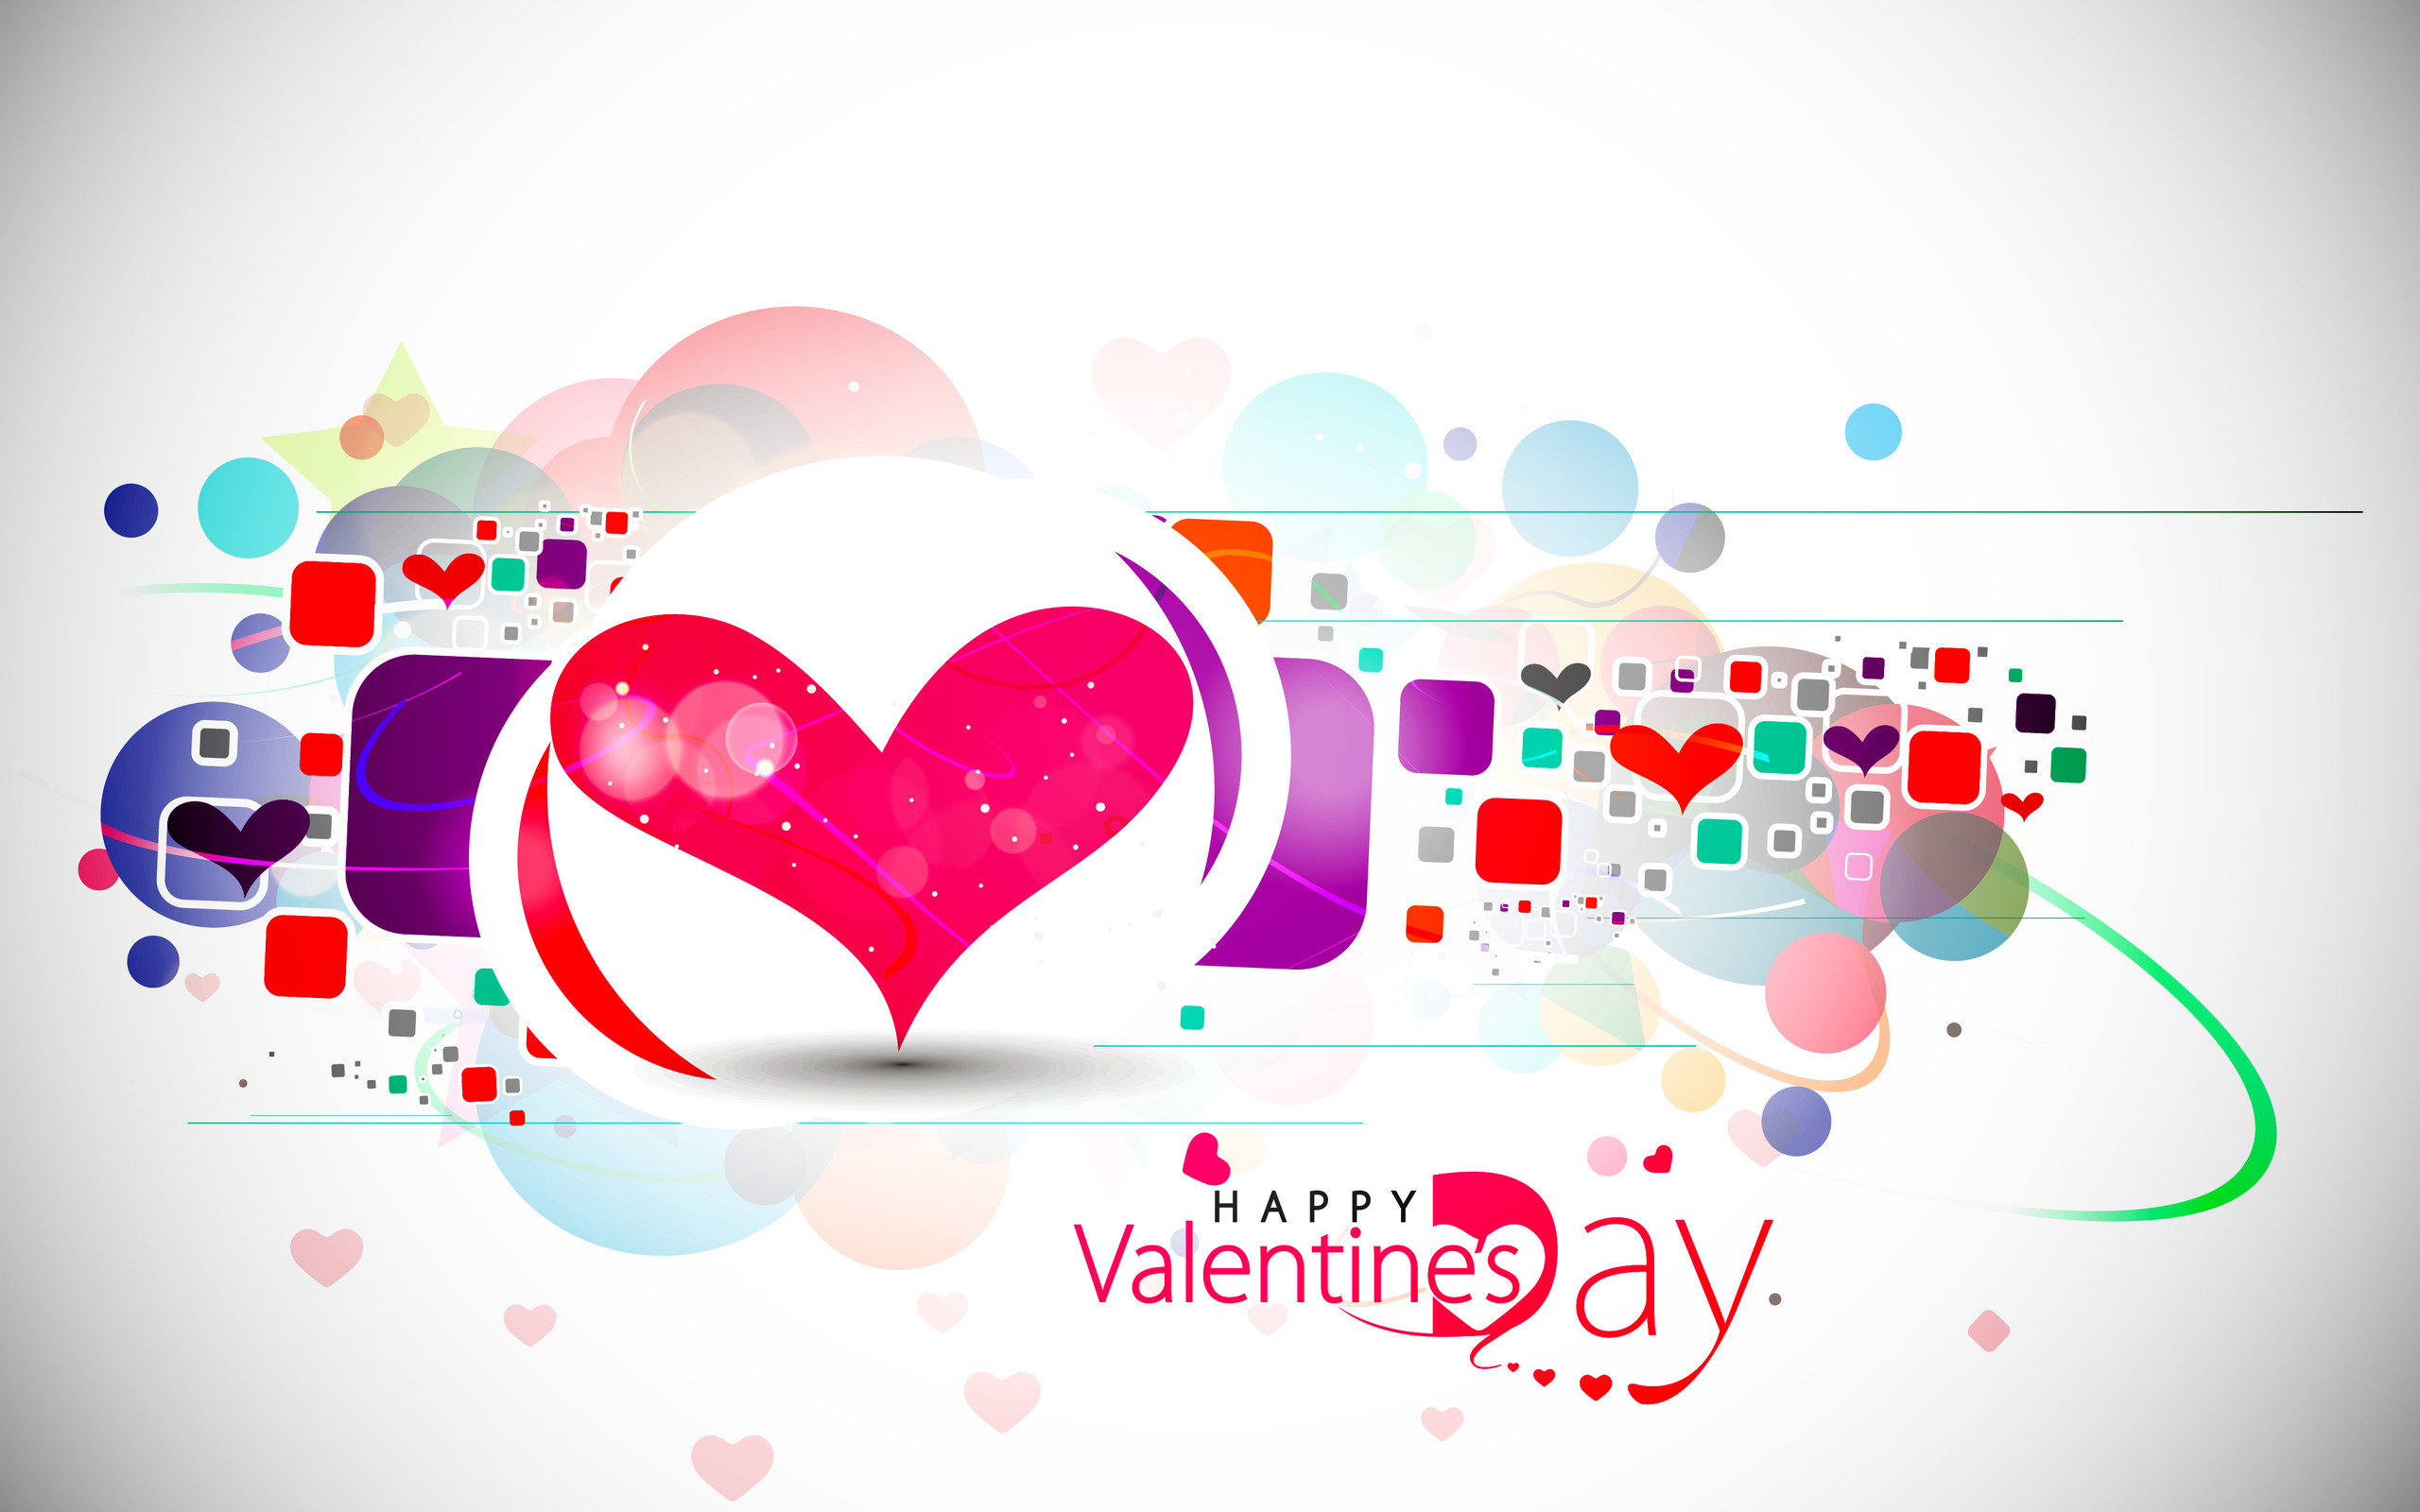 2560x1600 Happy valentines day 2017 Pictures for Love Beautiful Heart wallpapers  romantic Girlfriend Boyfriend Status